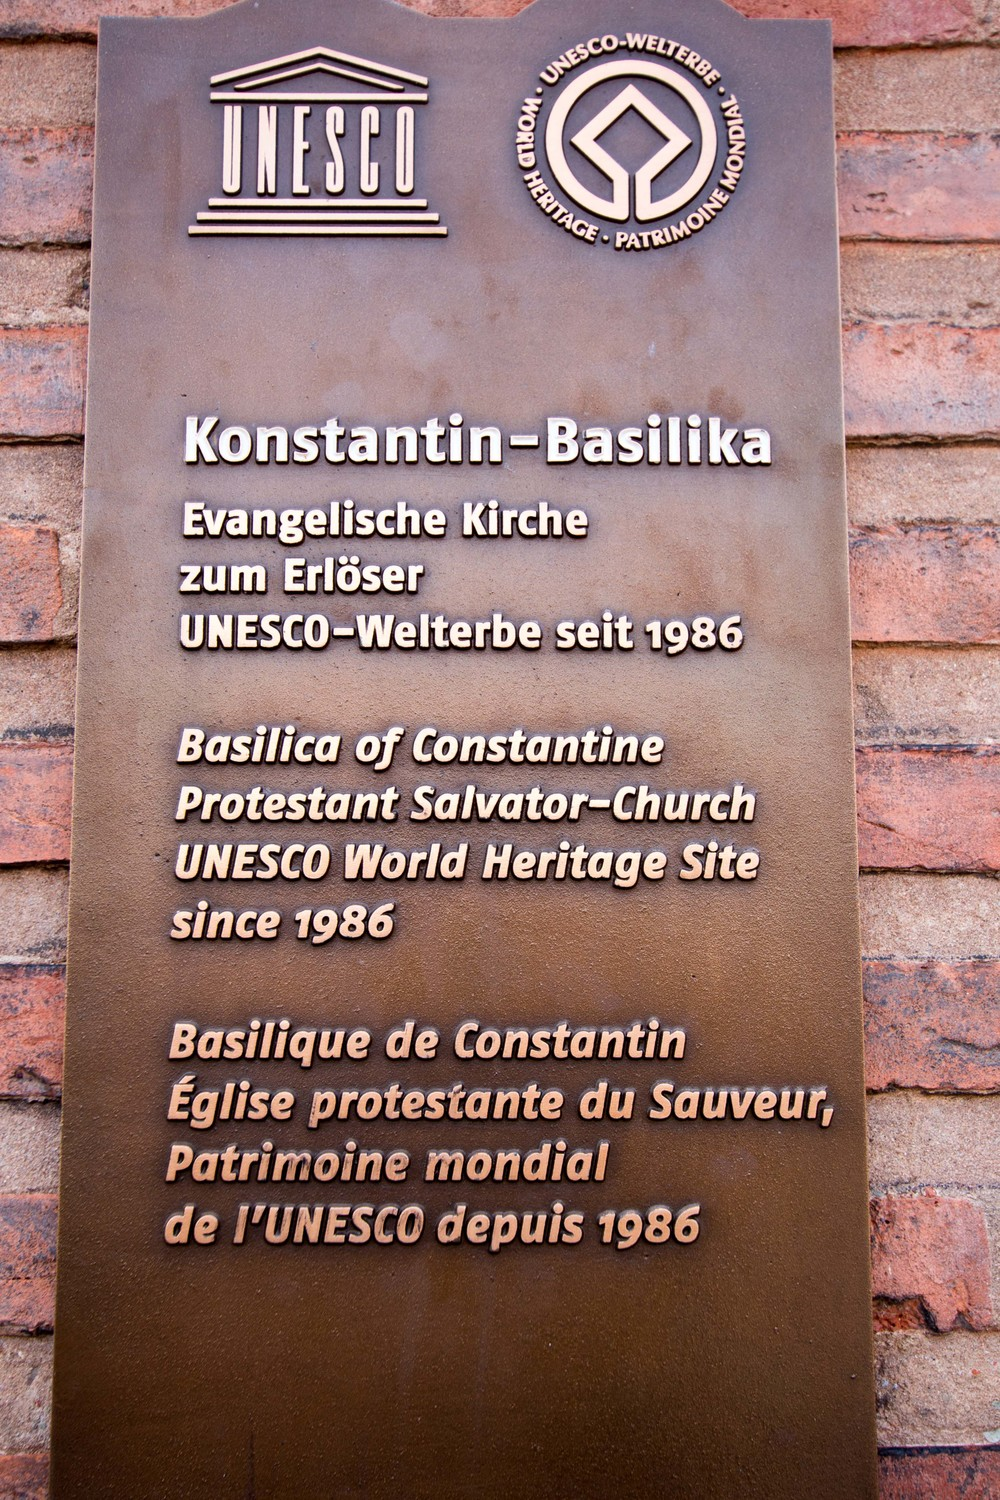 The Basilica is part of the Trier UNESCO World Heritage Sites